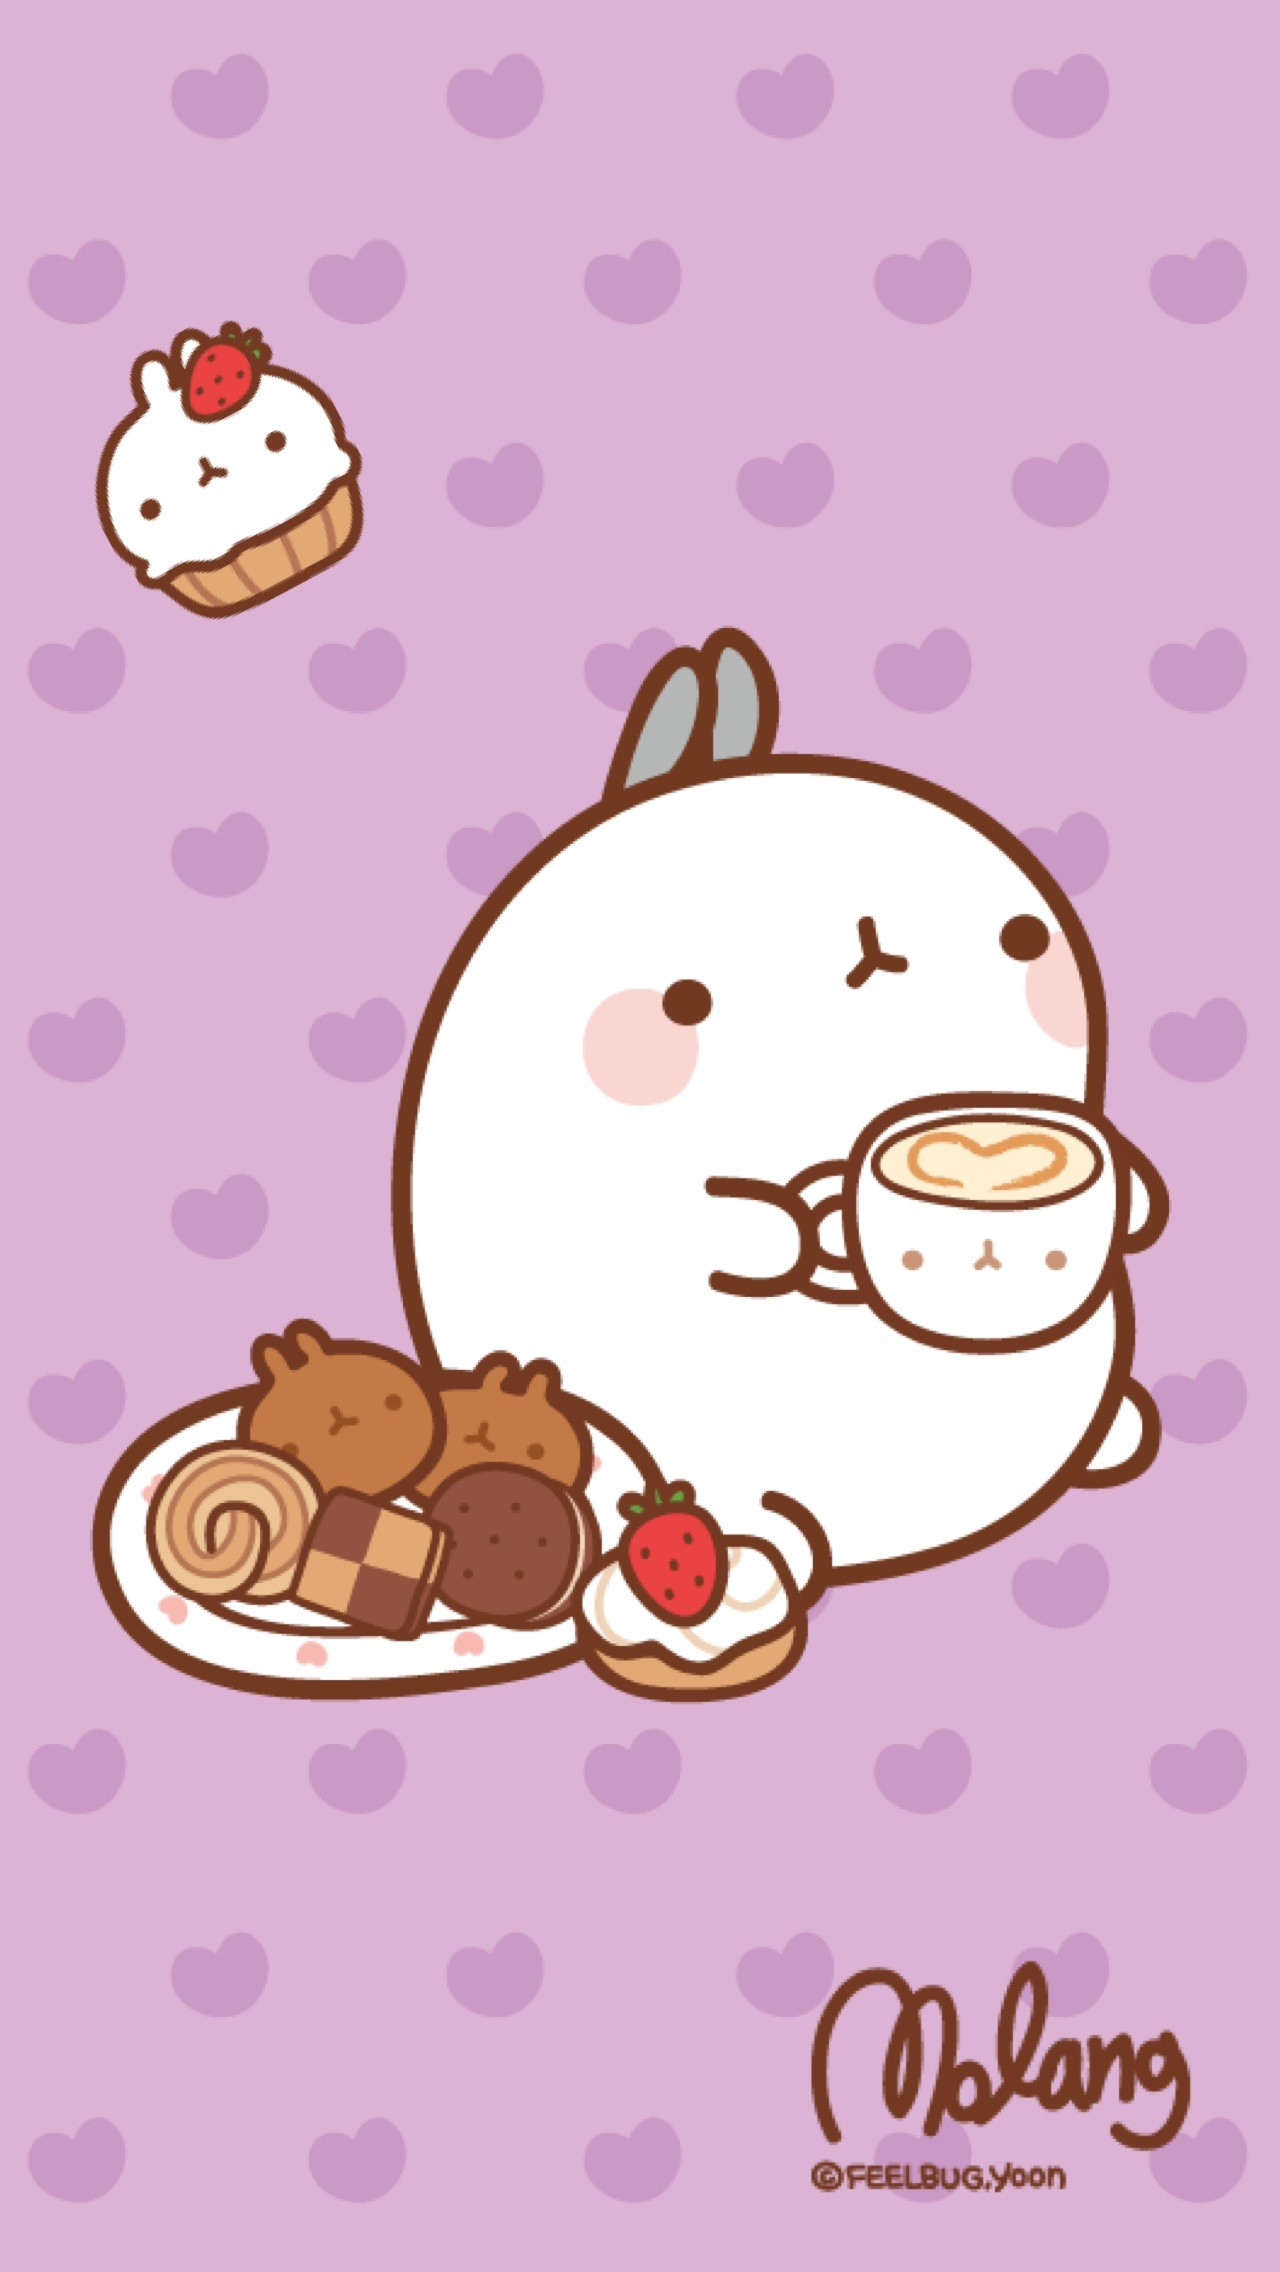 Cute kawaii wallpaper for iphone 82 images - Kawaii food wallpaper ...